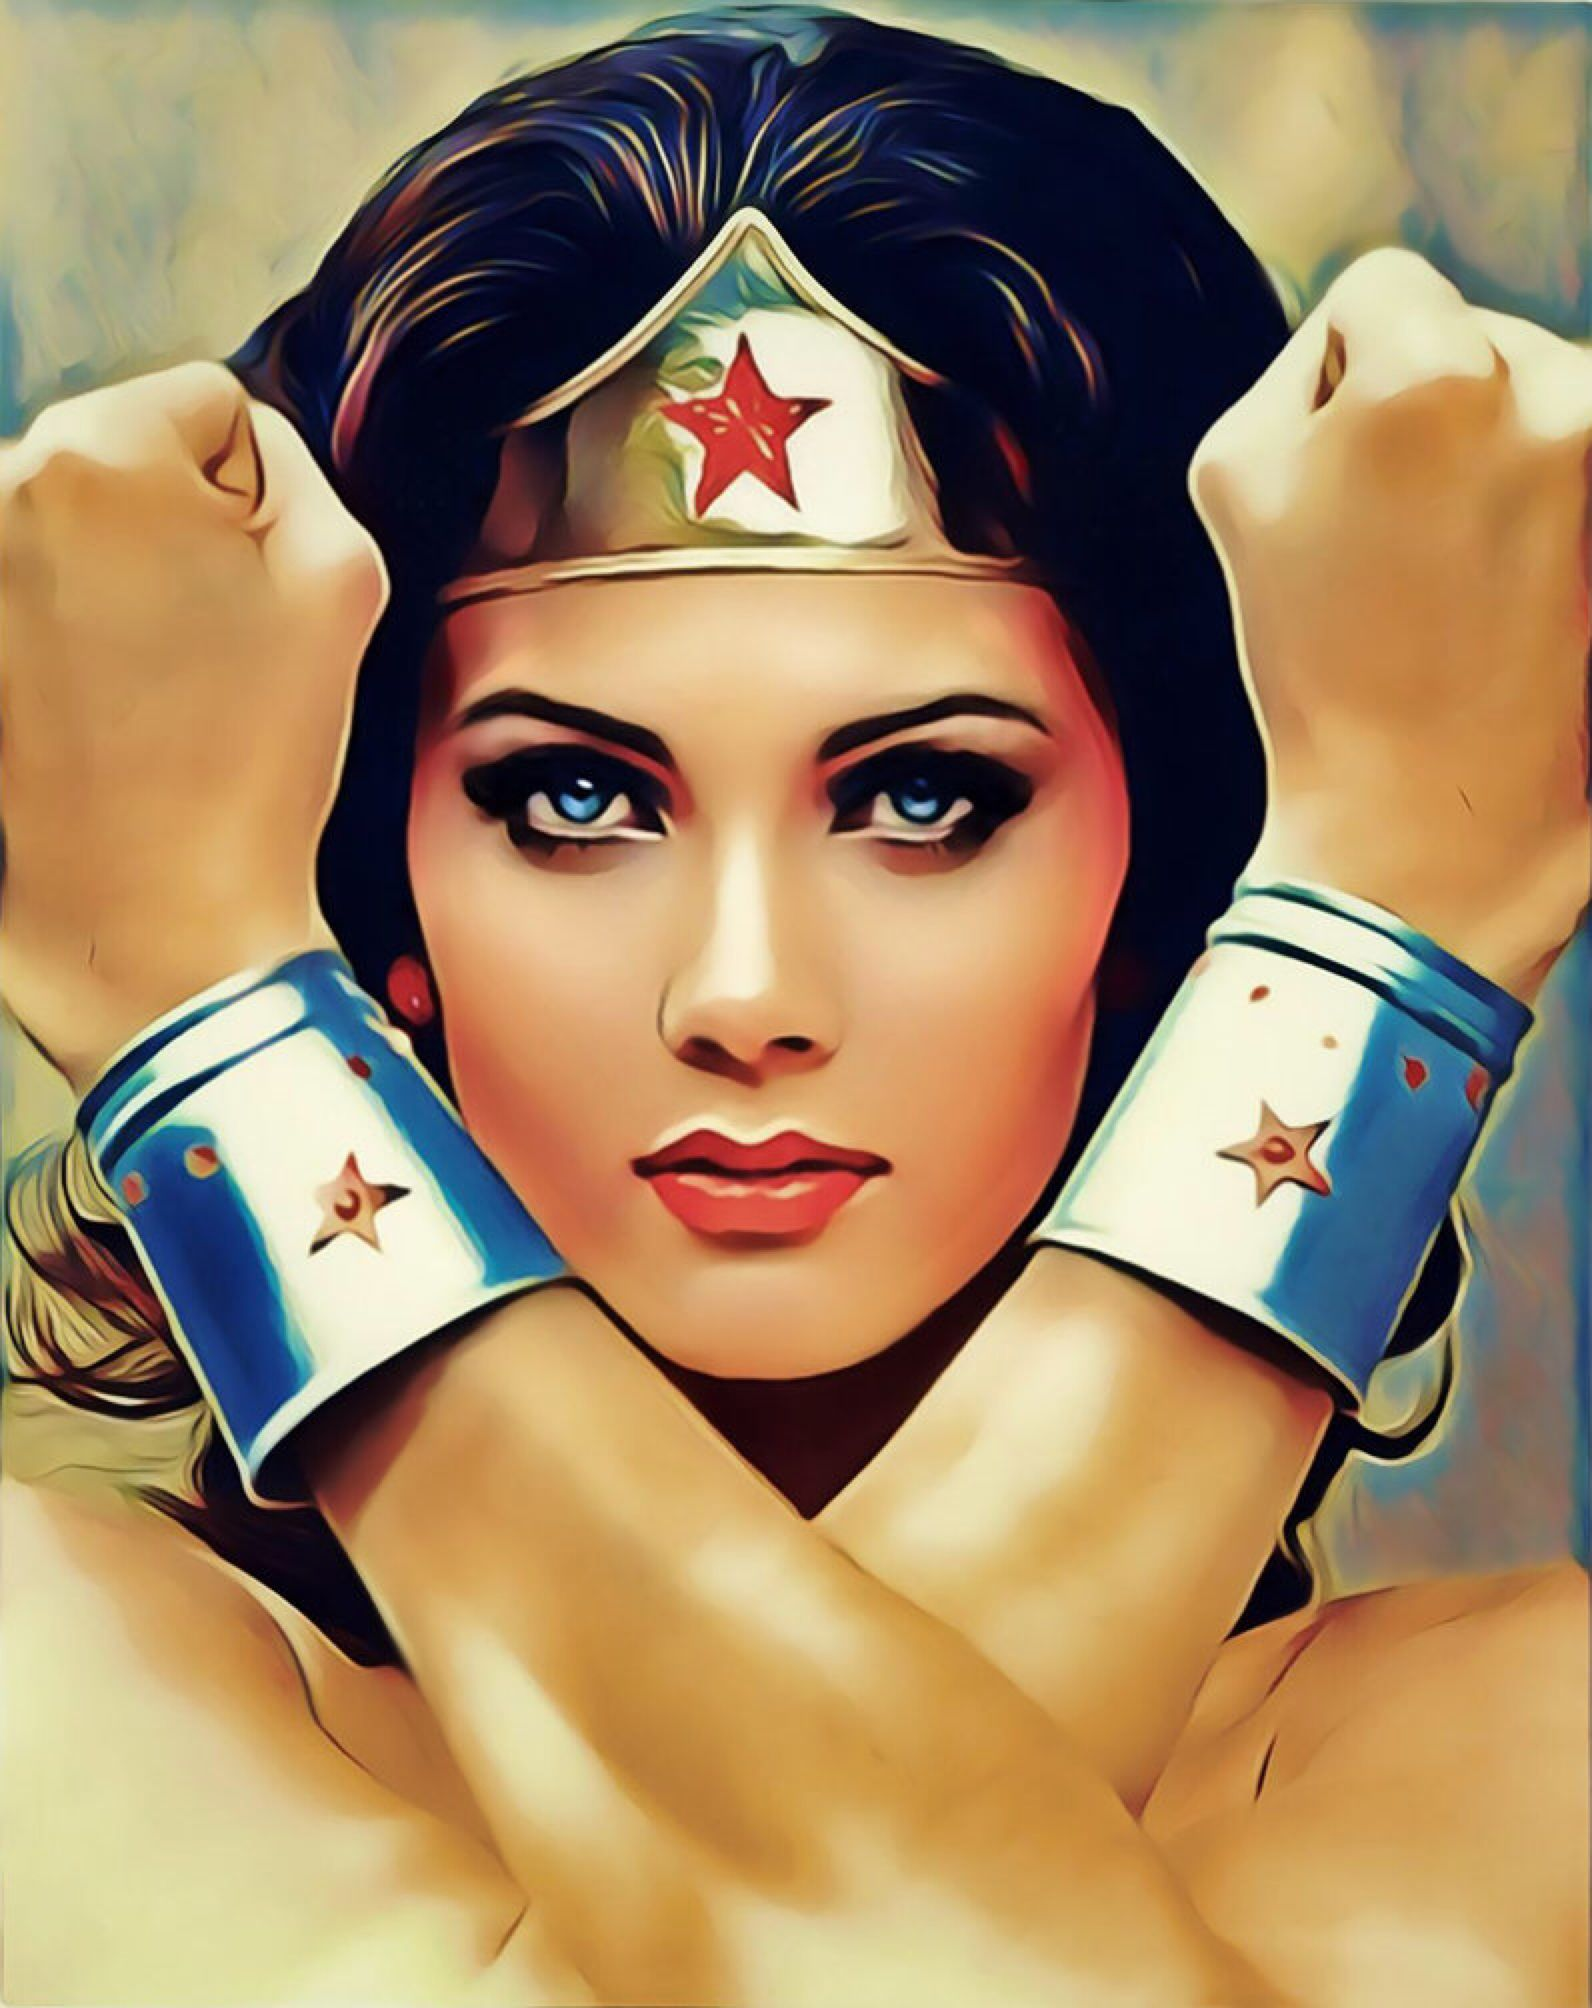 Lynda Carter As Wonder Woman By Petnick On Deviantart Wonder Woman Art Wonder Woman Tattoo Wonder Woman Pictures